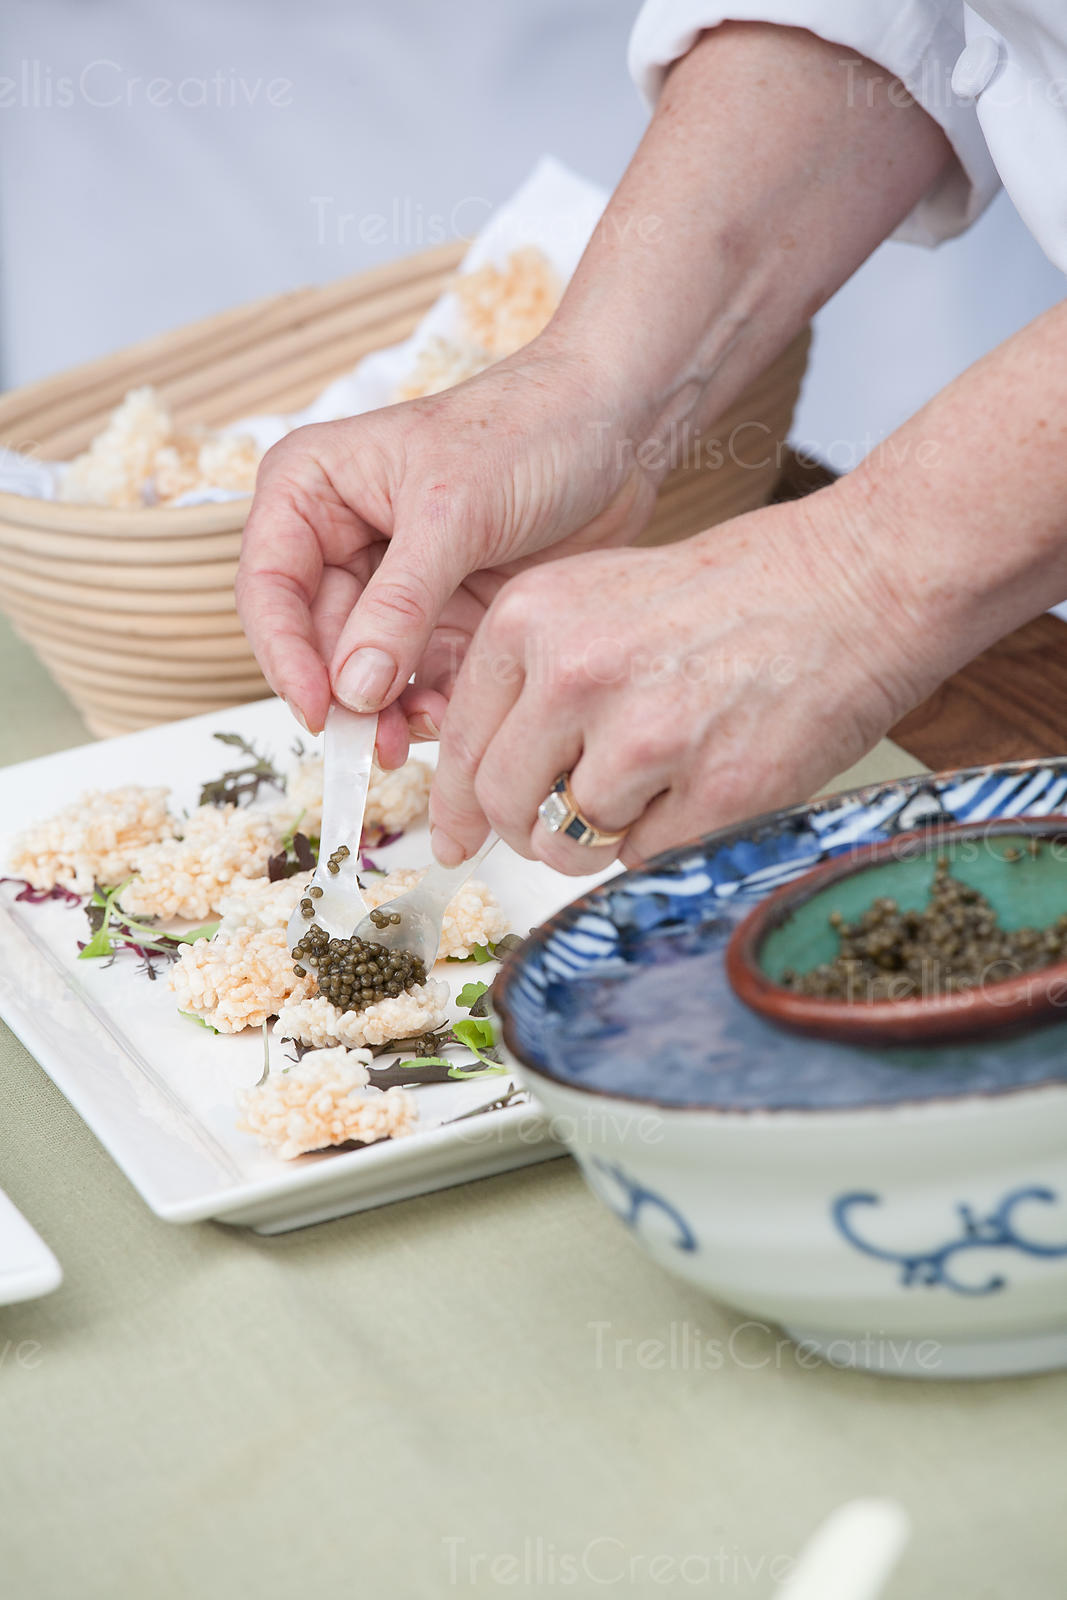 A female chef places black caviar on a puffed rice cracker